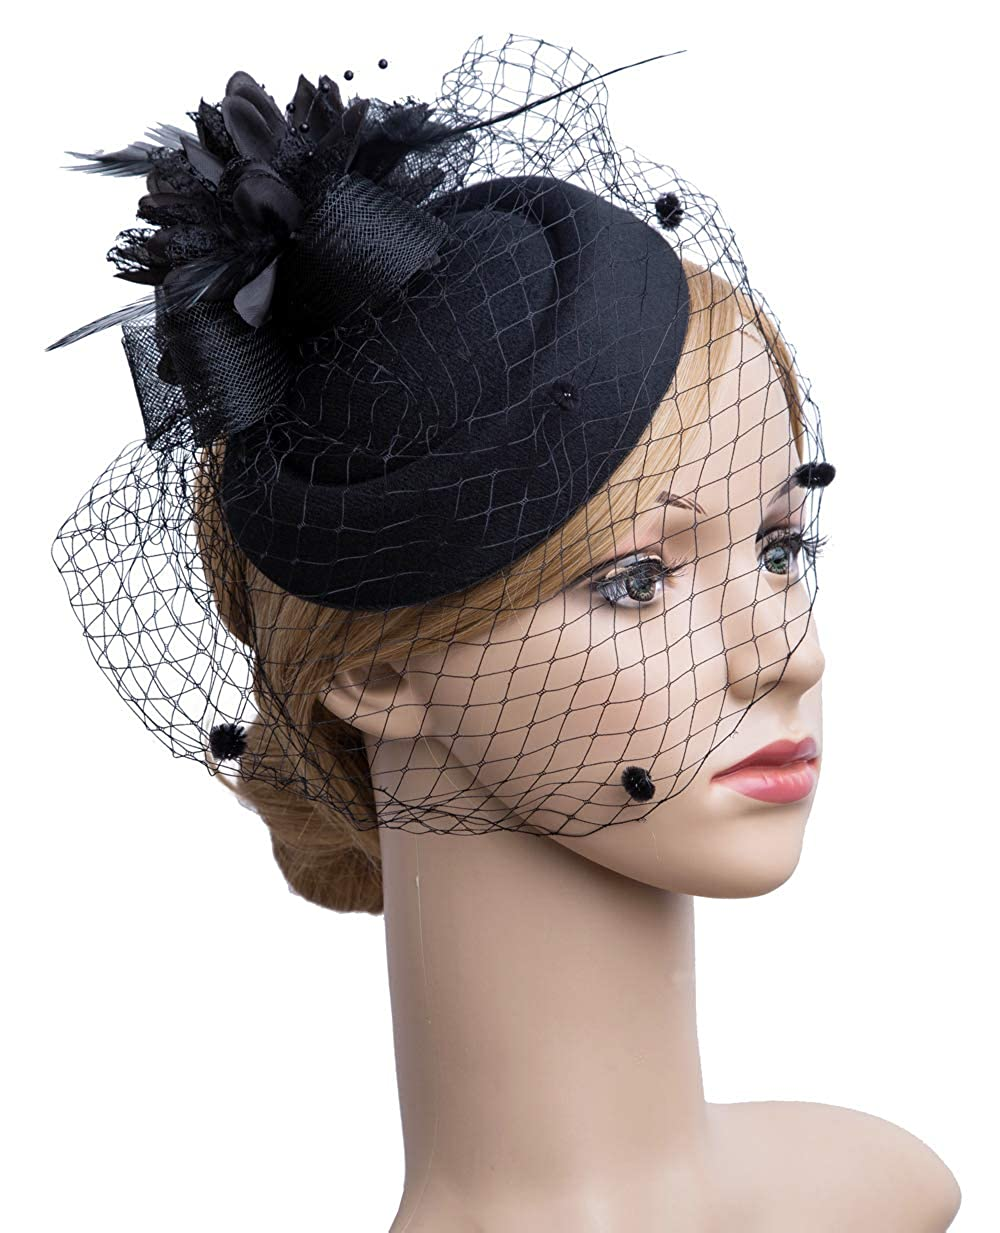 dd1d020ebc57a 1950s Women s Hat Styles   History Cizoe Fascinator Hair Clip Pillbox Hat  Bowler Feather Flower Veil